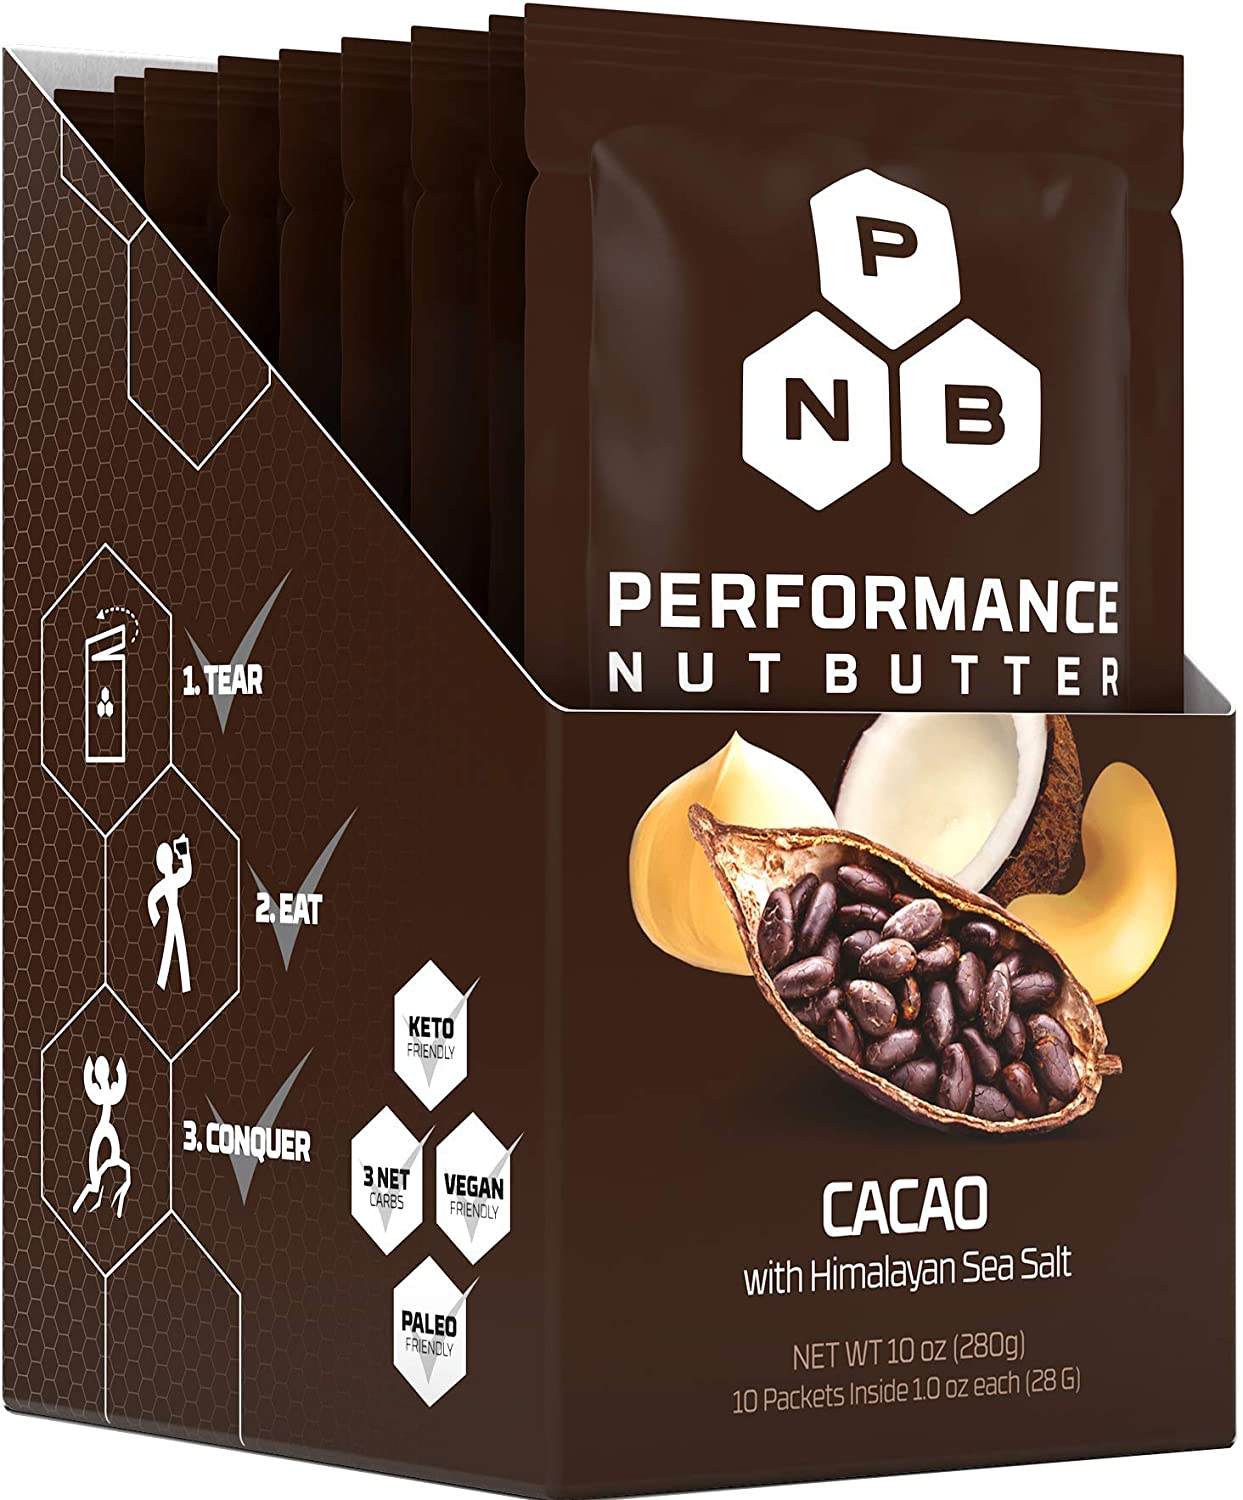 Keto Nut Butter Cacao, Cashew, Coconut & Macadamia Whole 30 Approved Food, Healthy Choc Fat Bomb Packets - Paleo & Vegan Friendly Low Carb Snacks, Perfect Ketogenic Diet Foods - Zero Added Sugar Snack